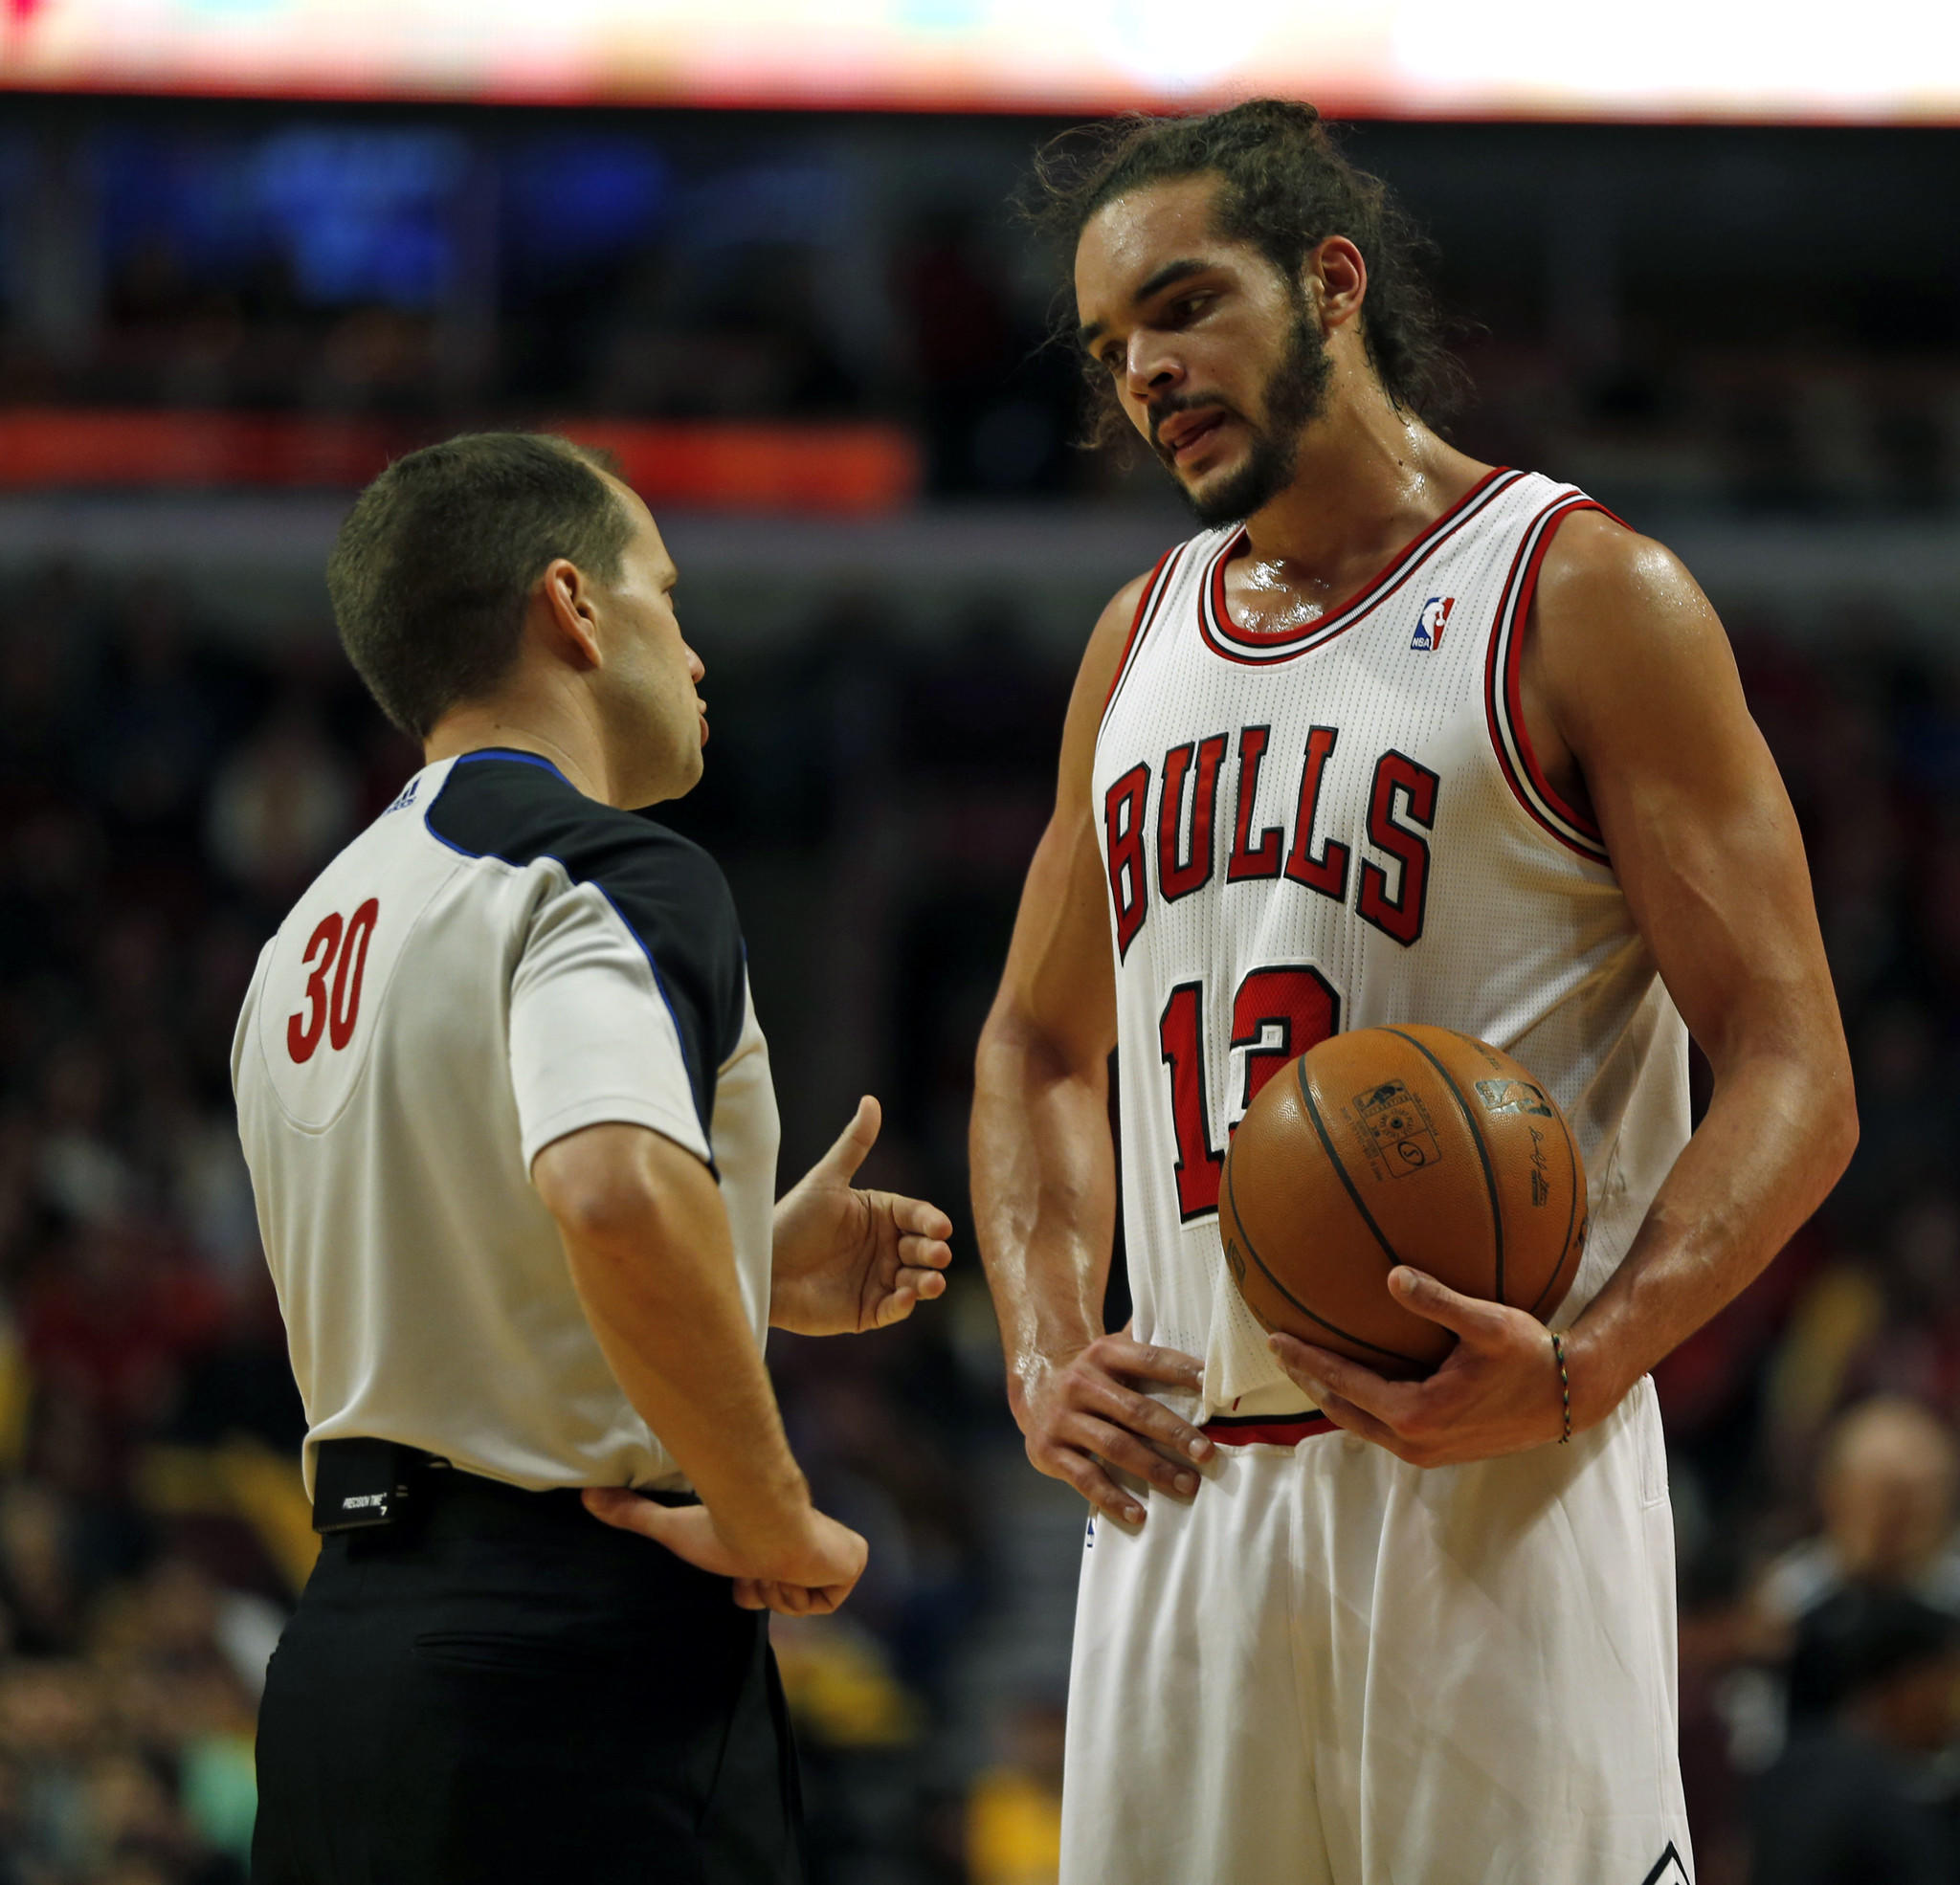 Chicago Bulls' Joakim Noah confers with official John Goble in 2nd quarter of NBA game against Los Angeles Lakers at United Center in Chicago.